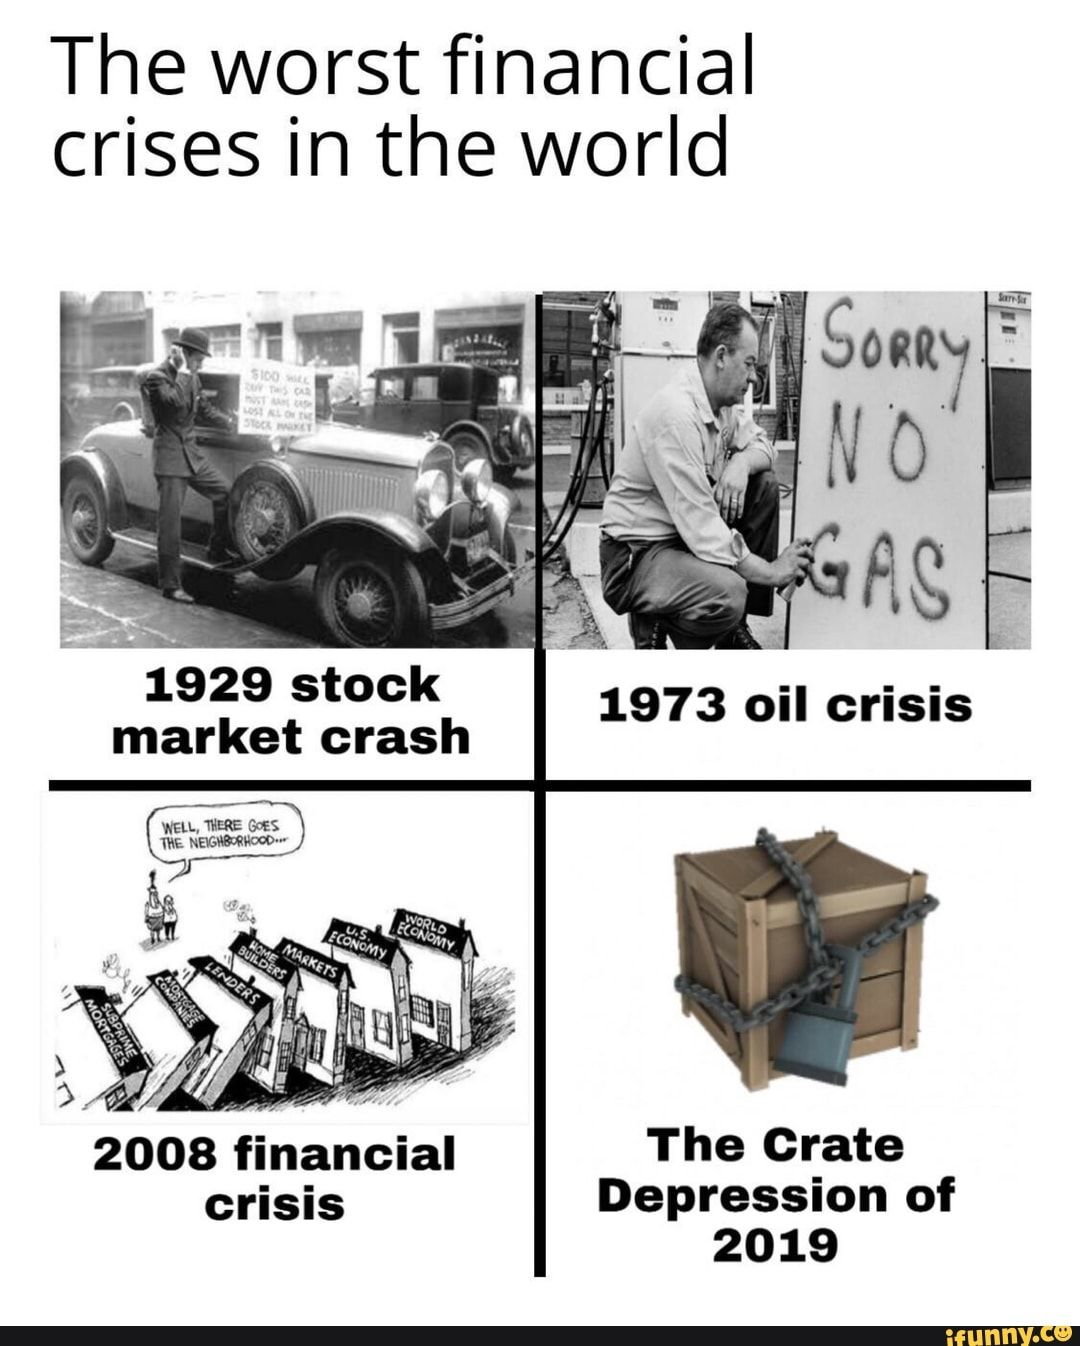 The Worst Financial Crises In The World 1929 Stock Market Crash Ifunny Stock Market Crash Stock Market Financial